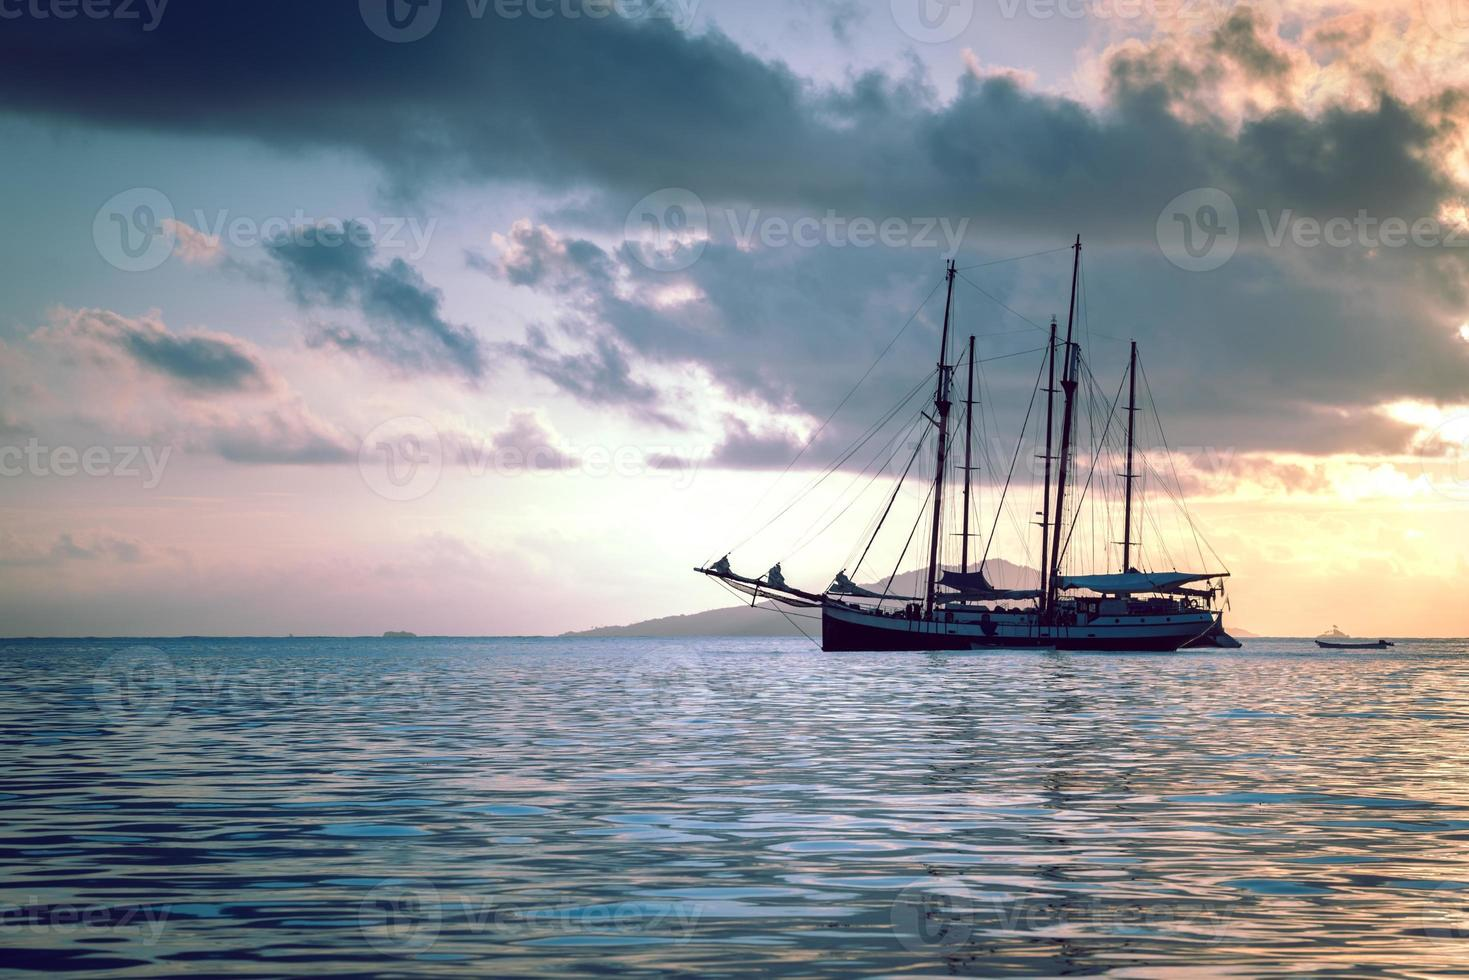 Recreational Yacht at the Indian Ocean photo